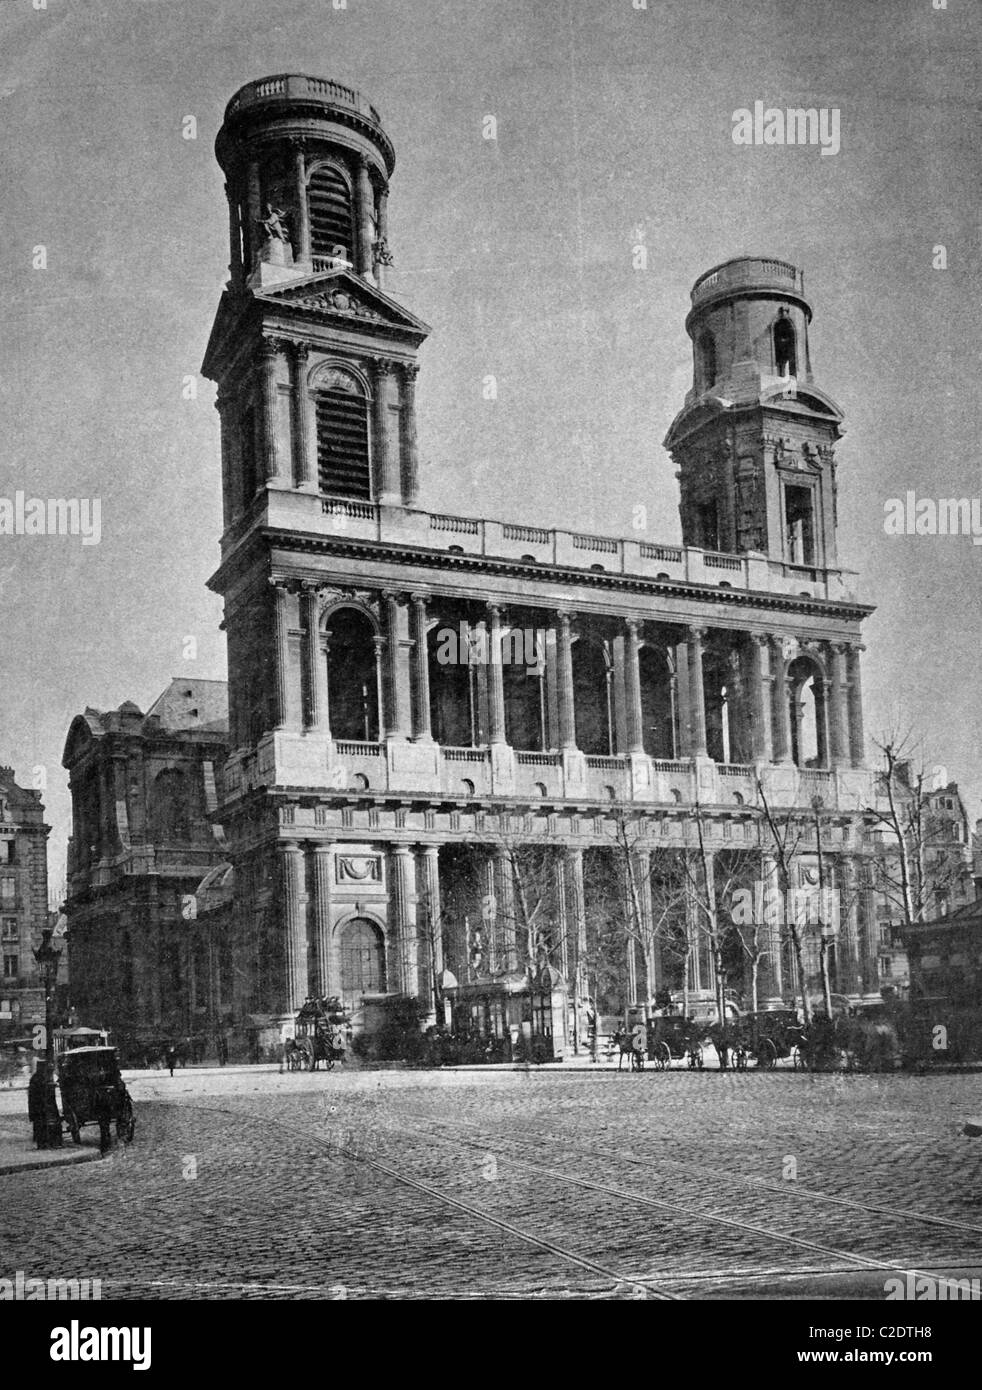 One of the first autotype prints, Eglise Saint-Sulpice Church, historic photograph, 1884, Paris, France, Europe Stock Photo